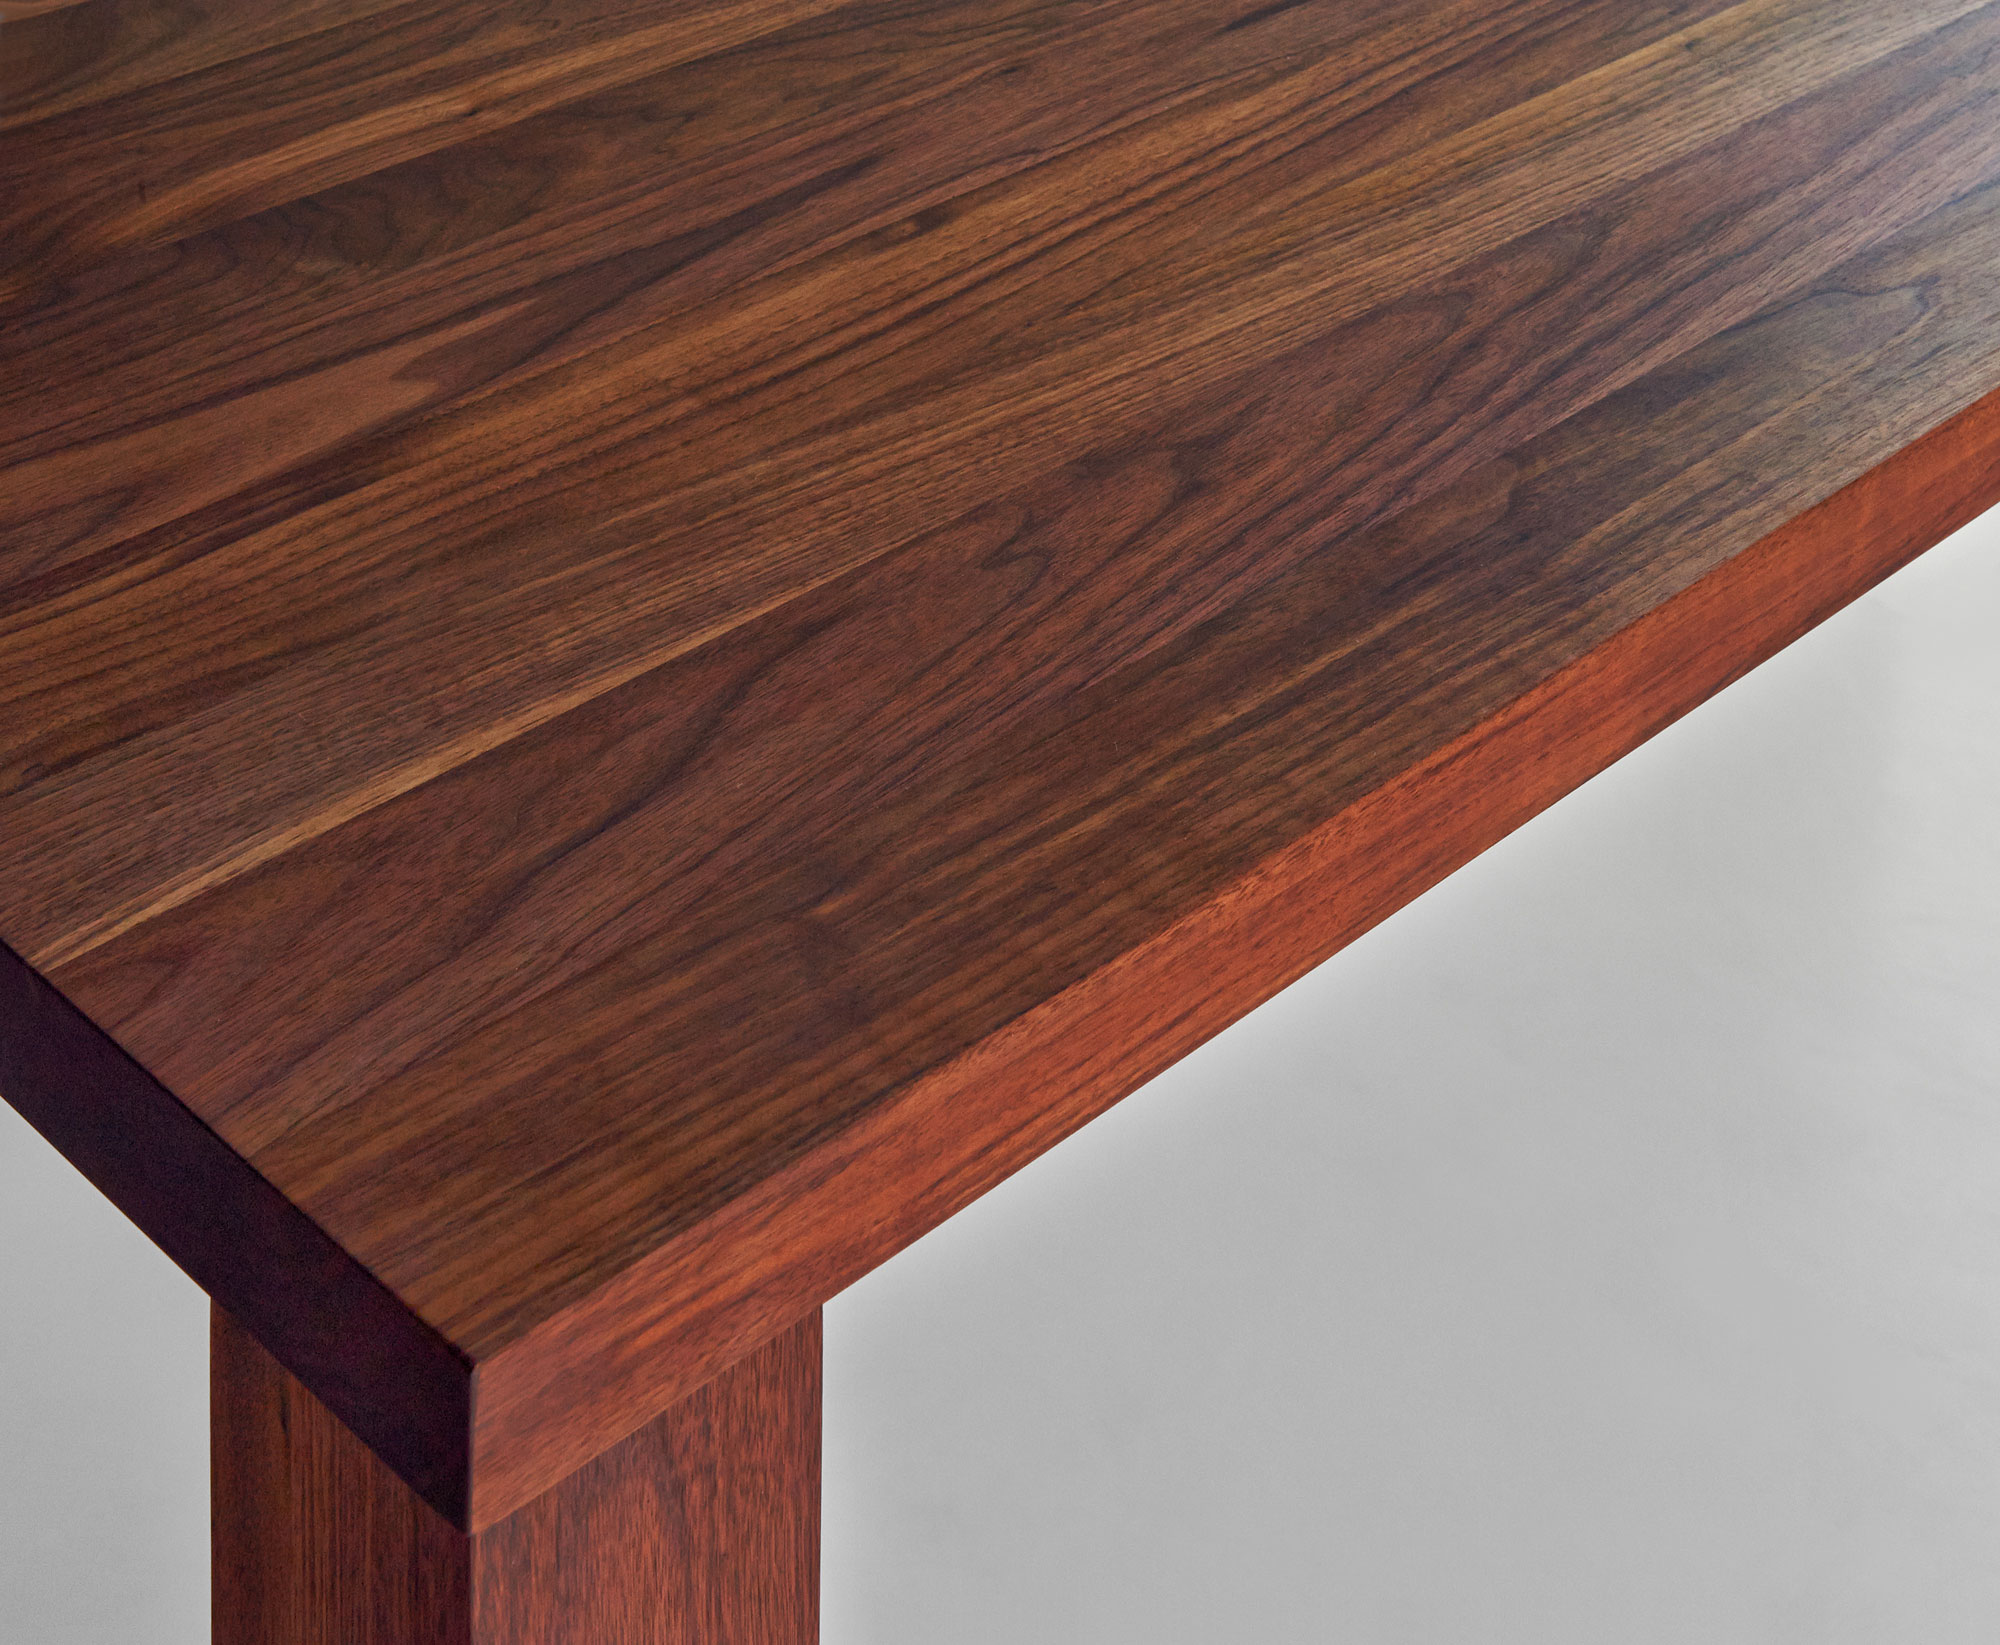 Frameless Solid Wood Table IUSTUS VDC9019a custom made in solid wood by vitamin design